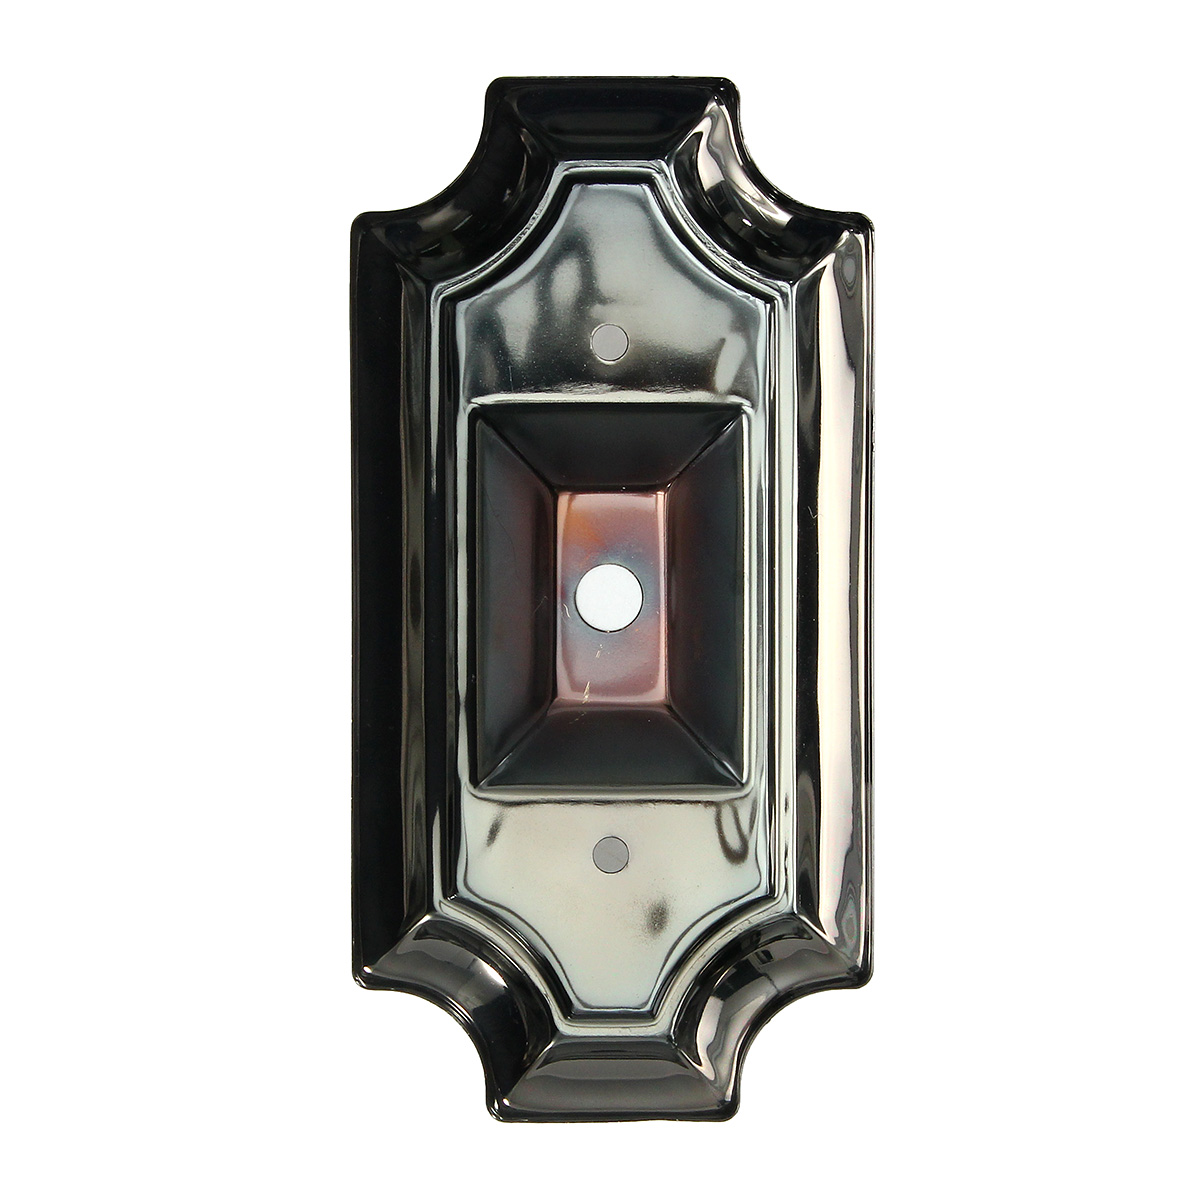 Retro Vintage Rectangle Style Sconce Wall Lamp Light Base ... on Wall Sconce Replacement Parts id=95740